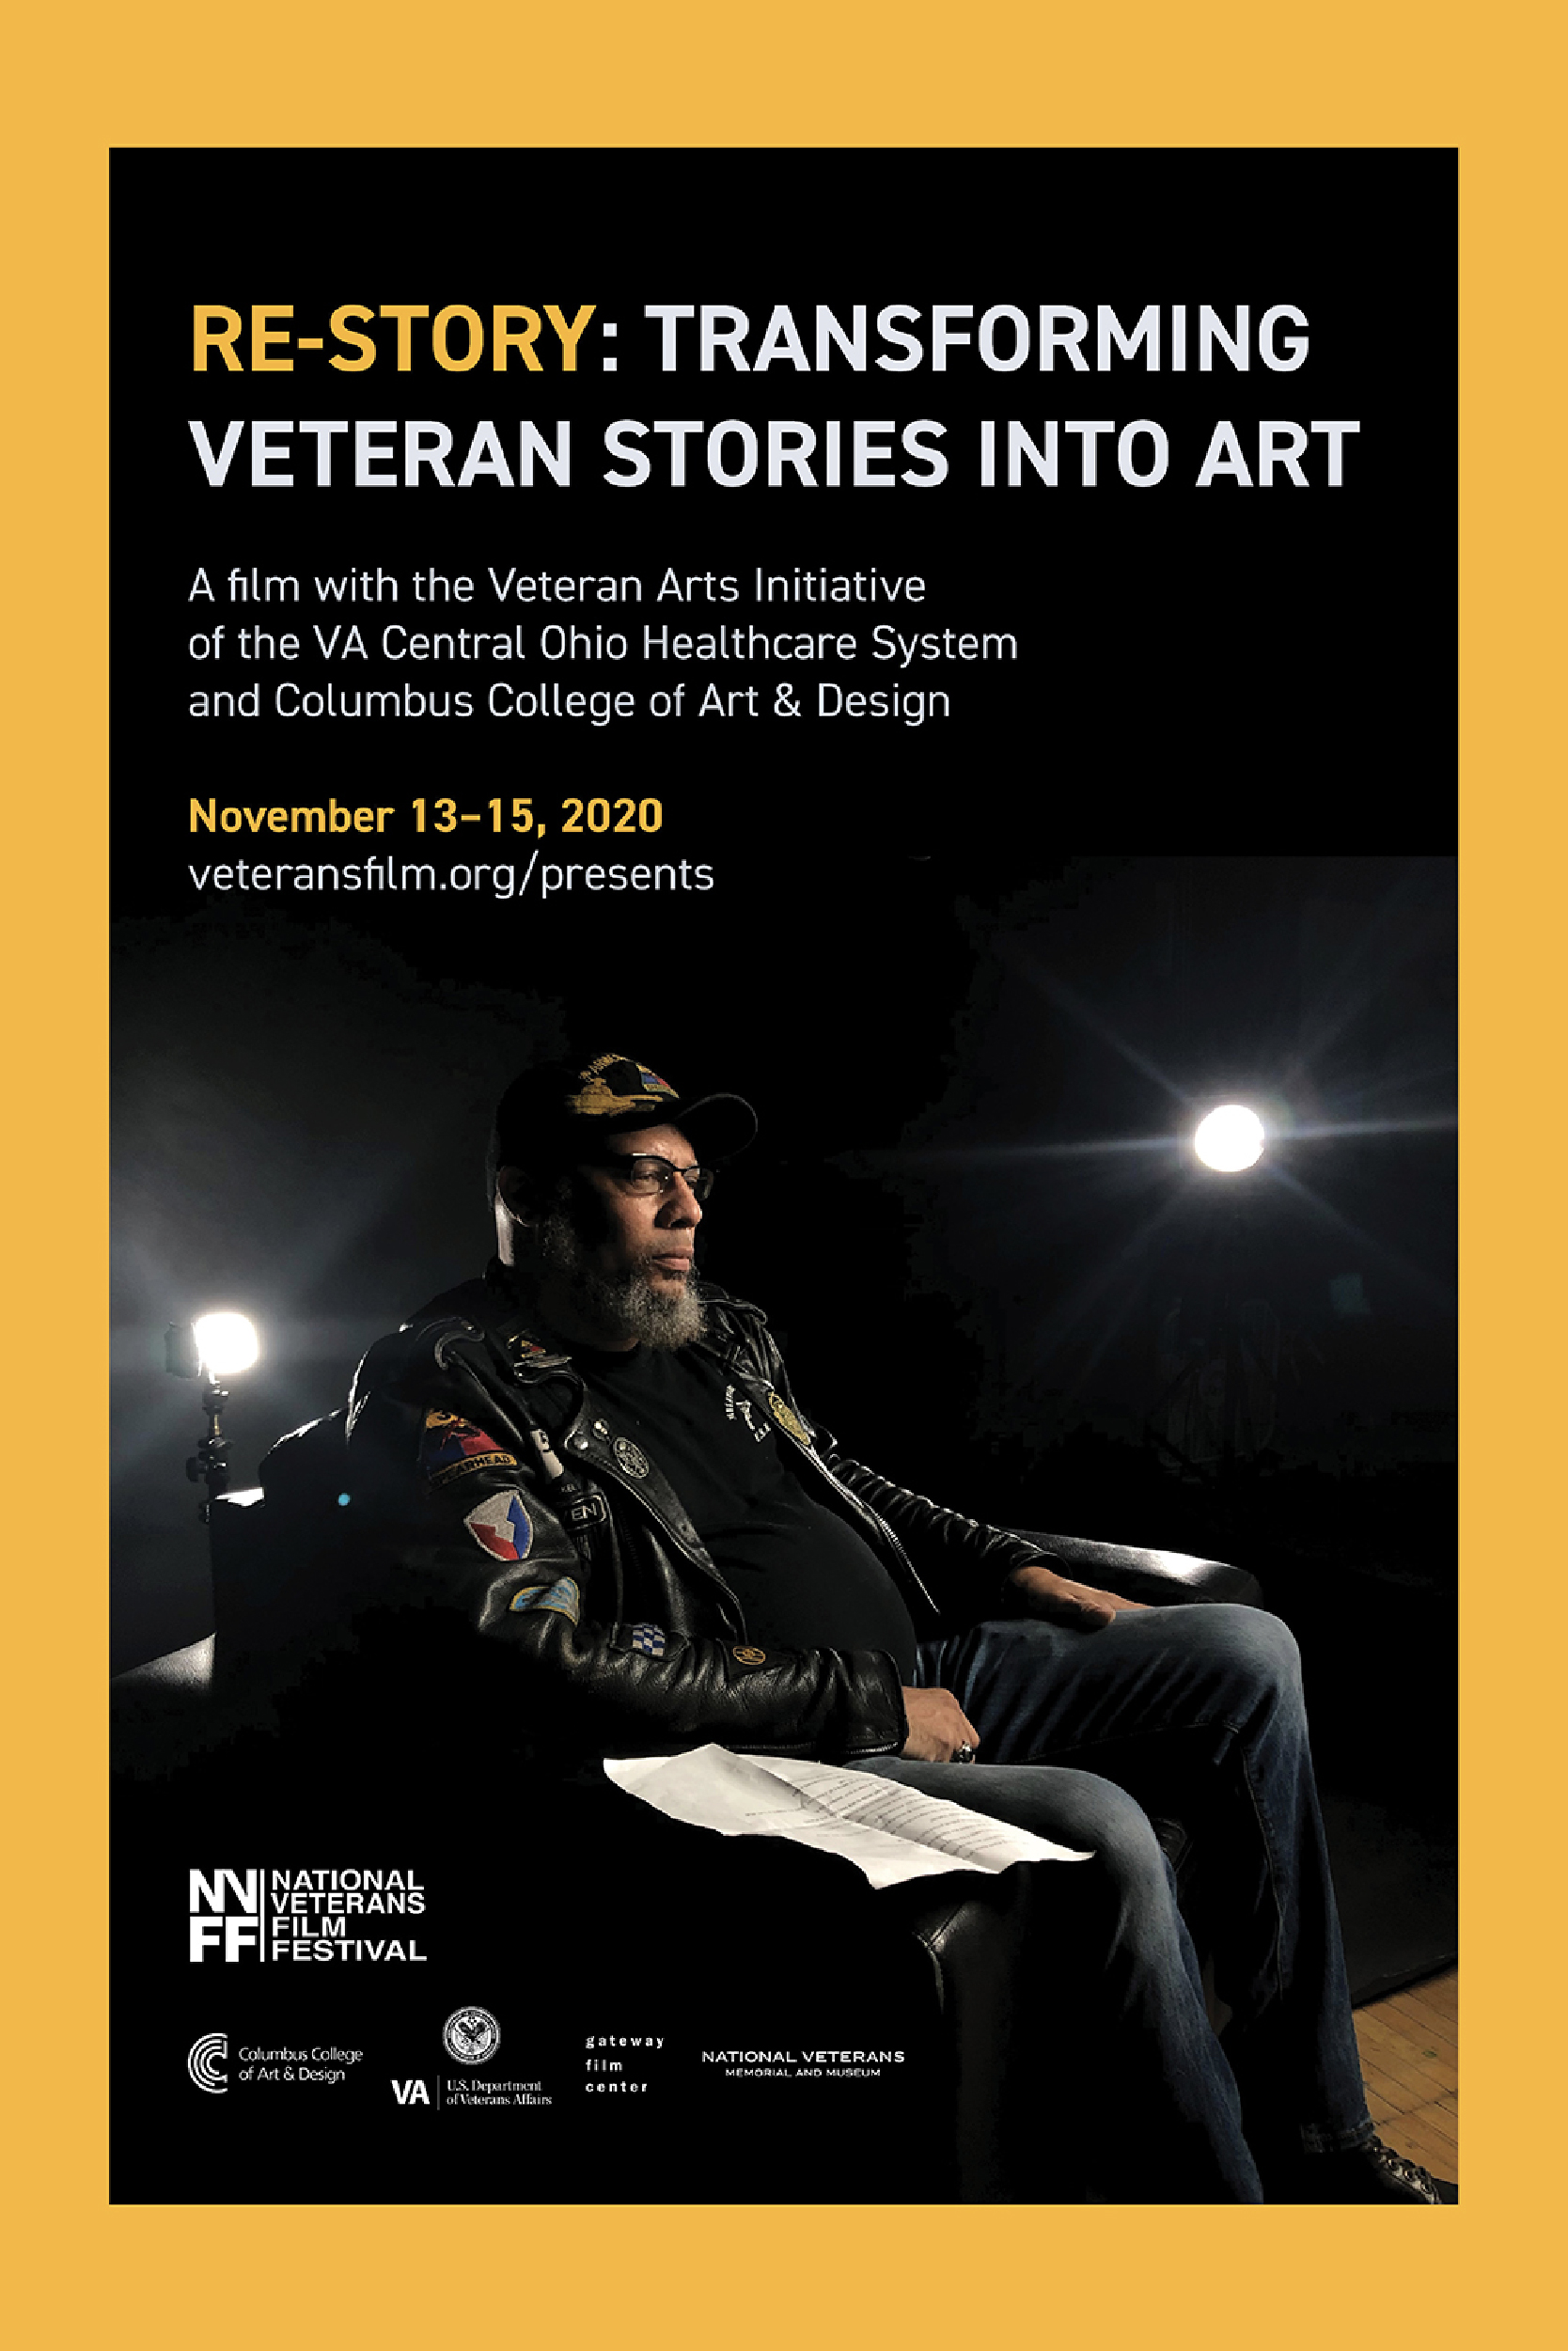 Poster for NVFF Presents: Re-story: Transforming Veteran Stories into Art